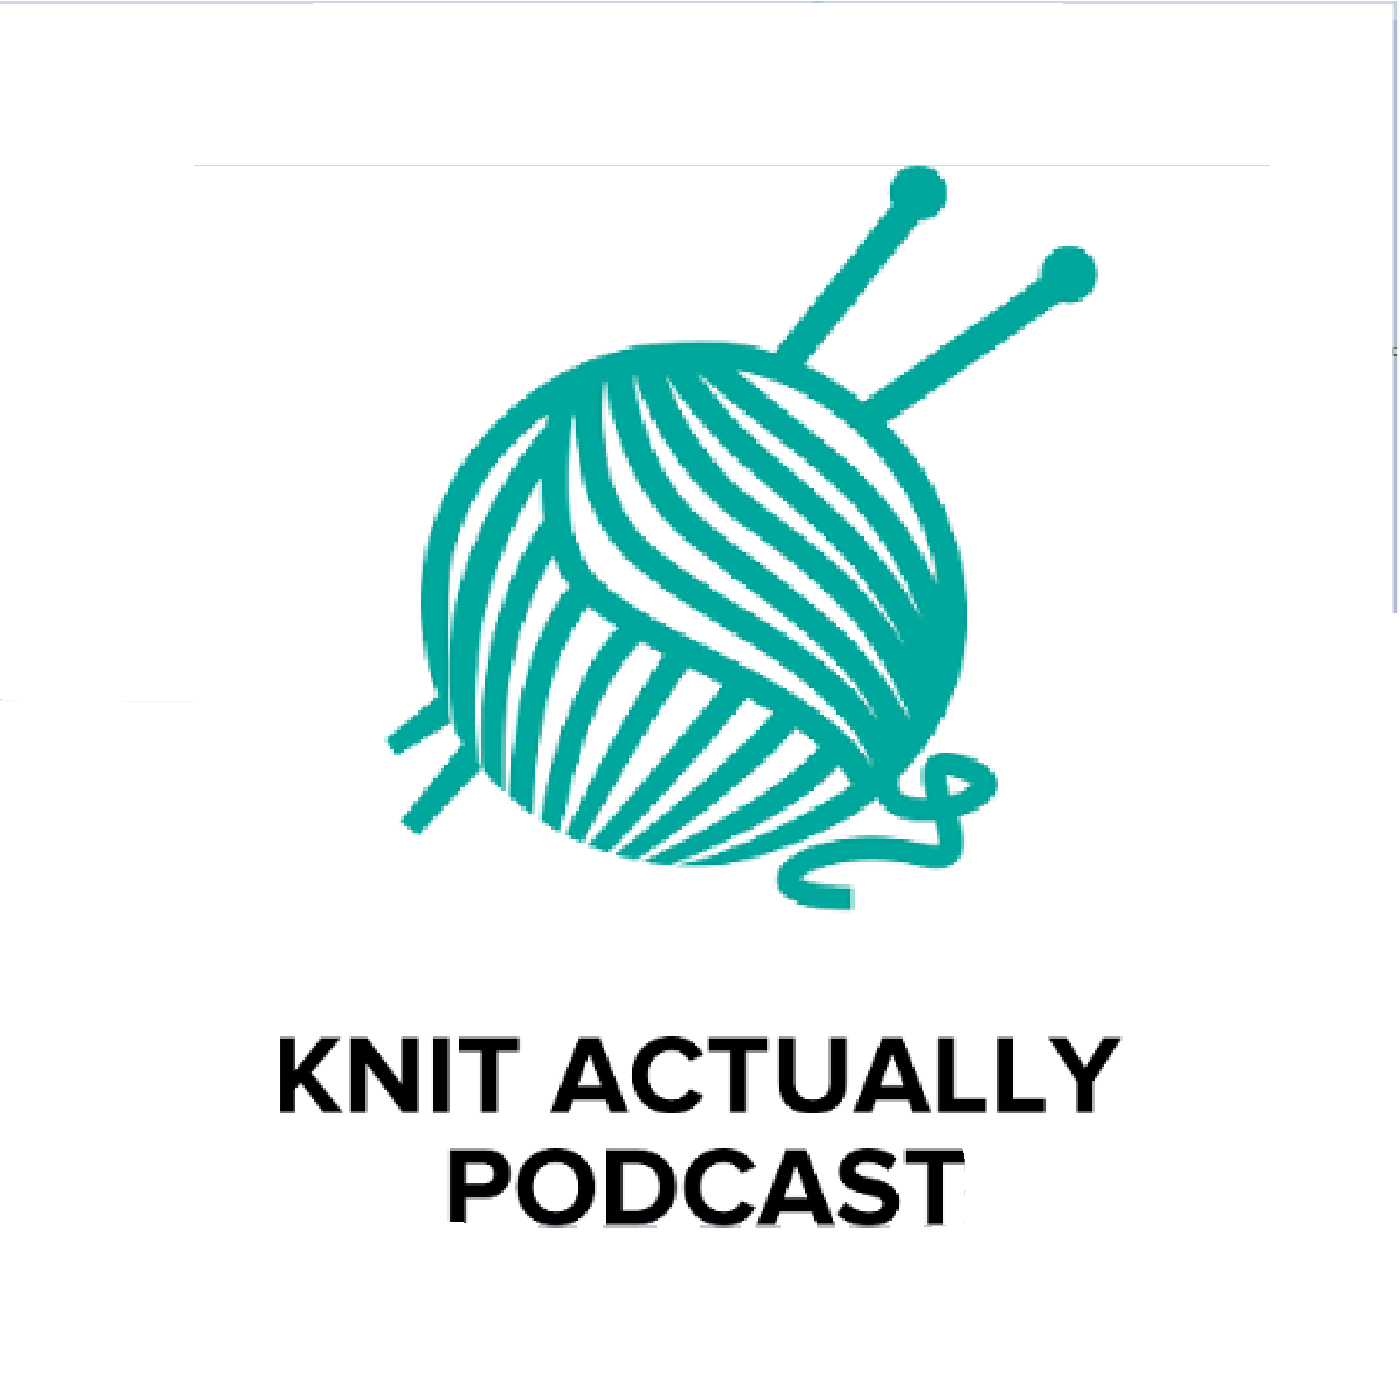 Knit Actually Podcast - Knit Actually Podcast